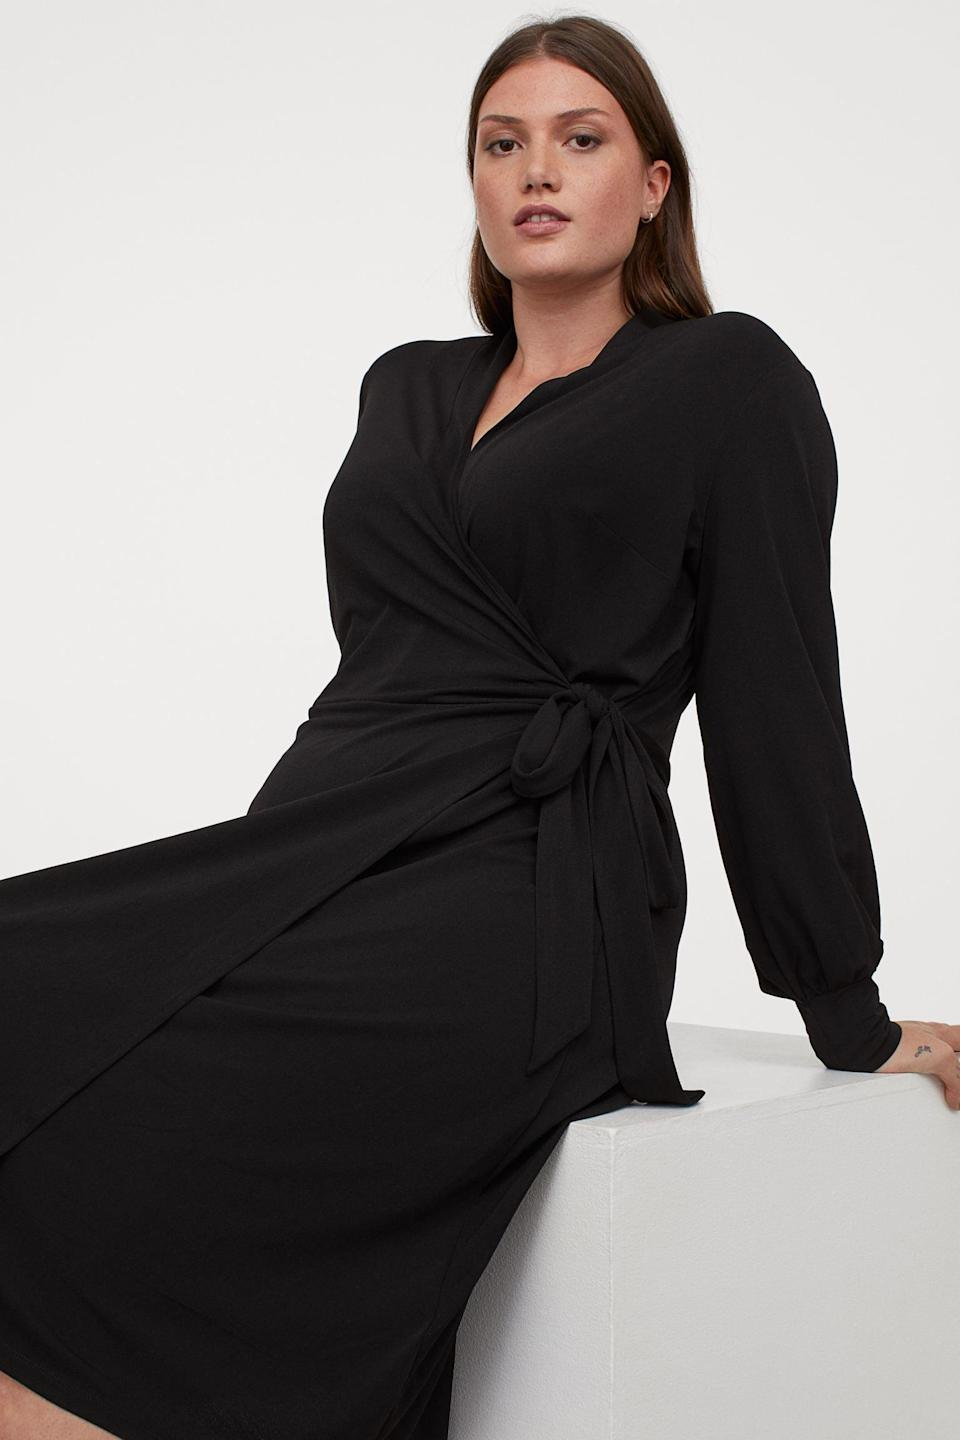 <p>From the office to an after-work dinner, this <span>Calf-Length Wrap Dress</span> ($28, originally $35) will stylishly transition from day to night.</p>